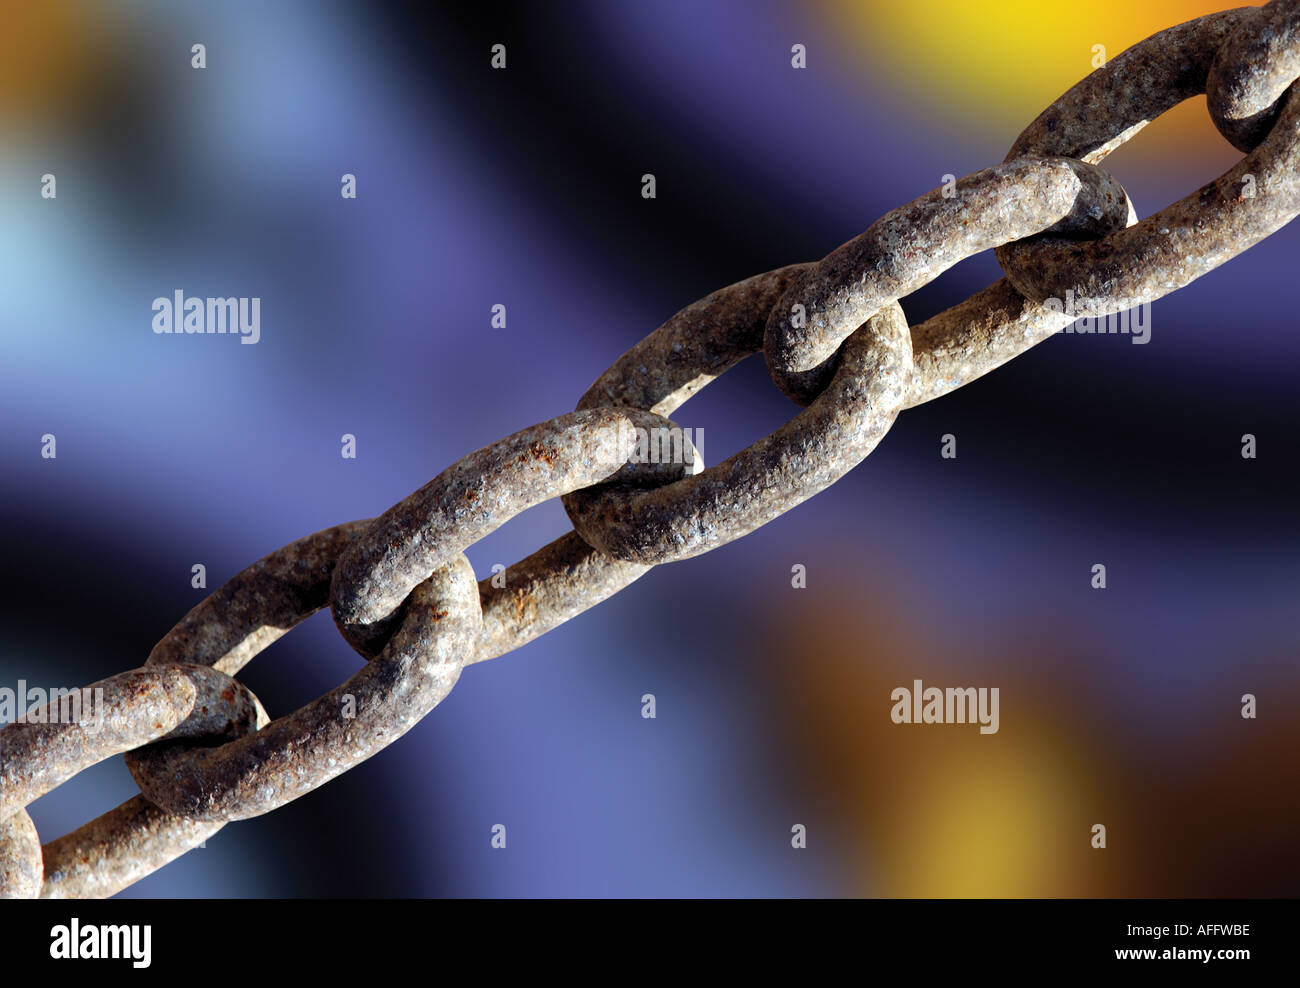 industrial chain - Stock Image